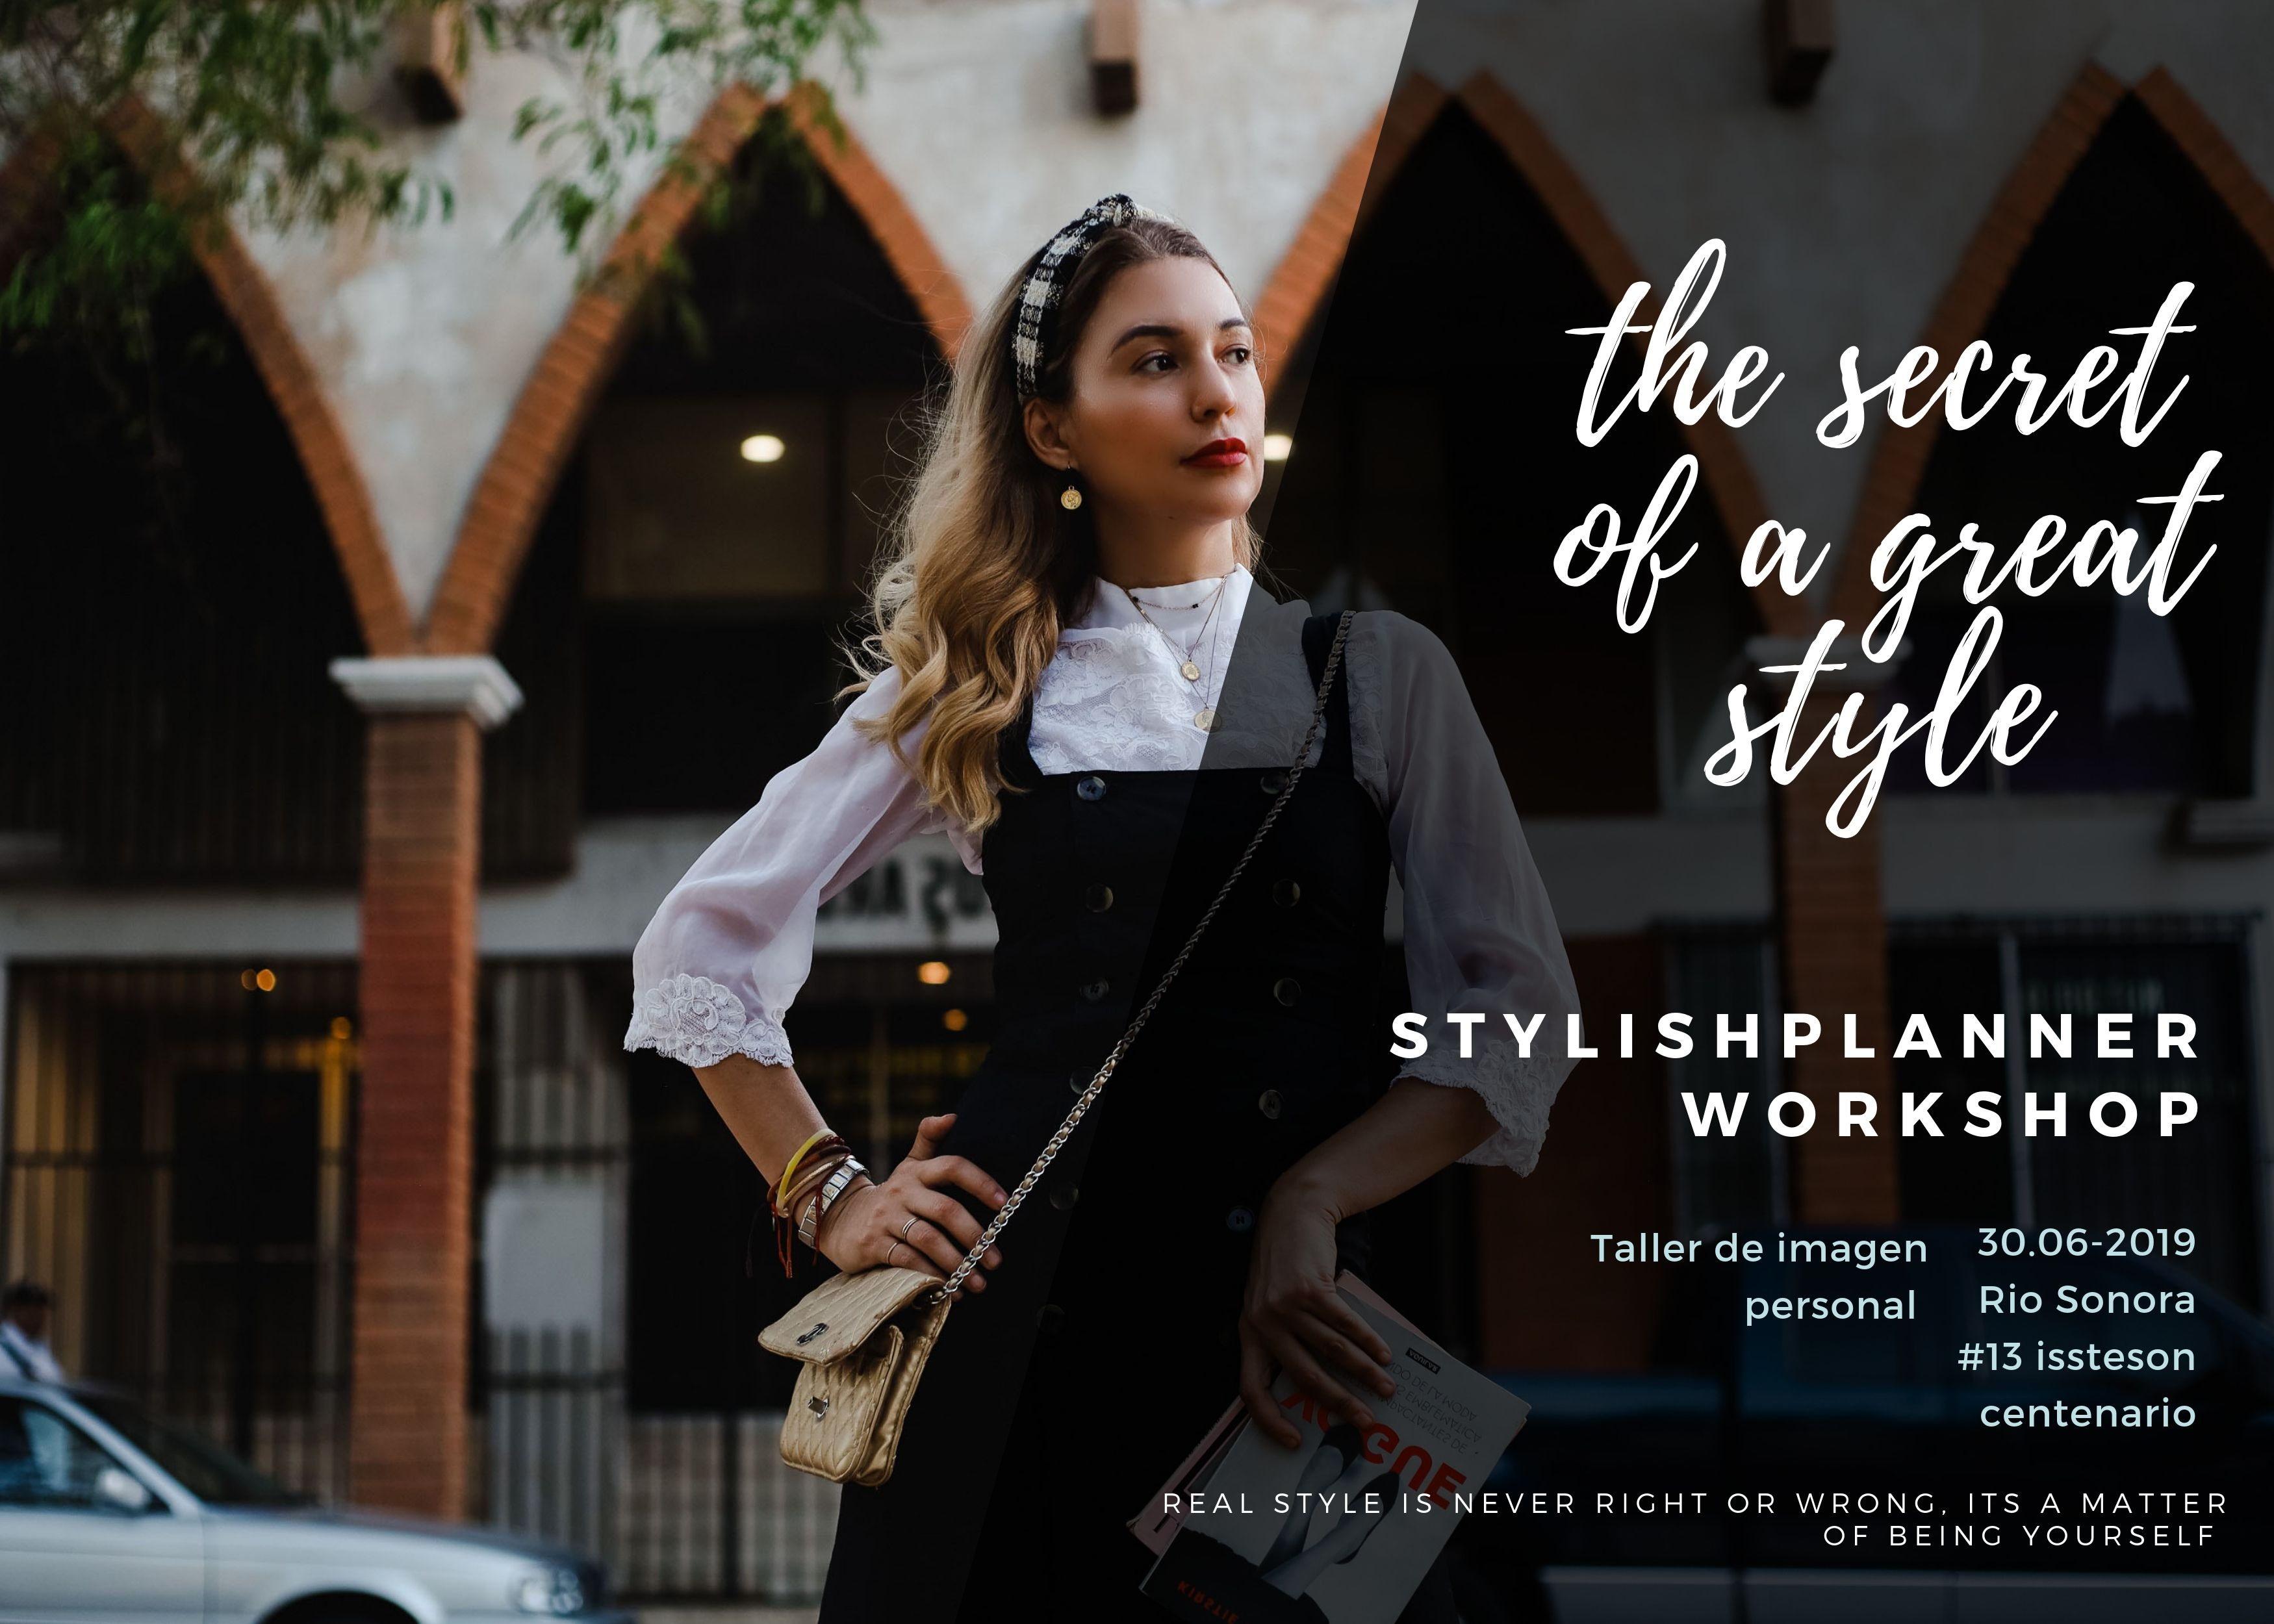 The secret of a great style